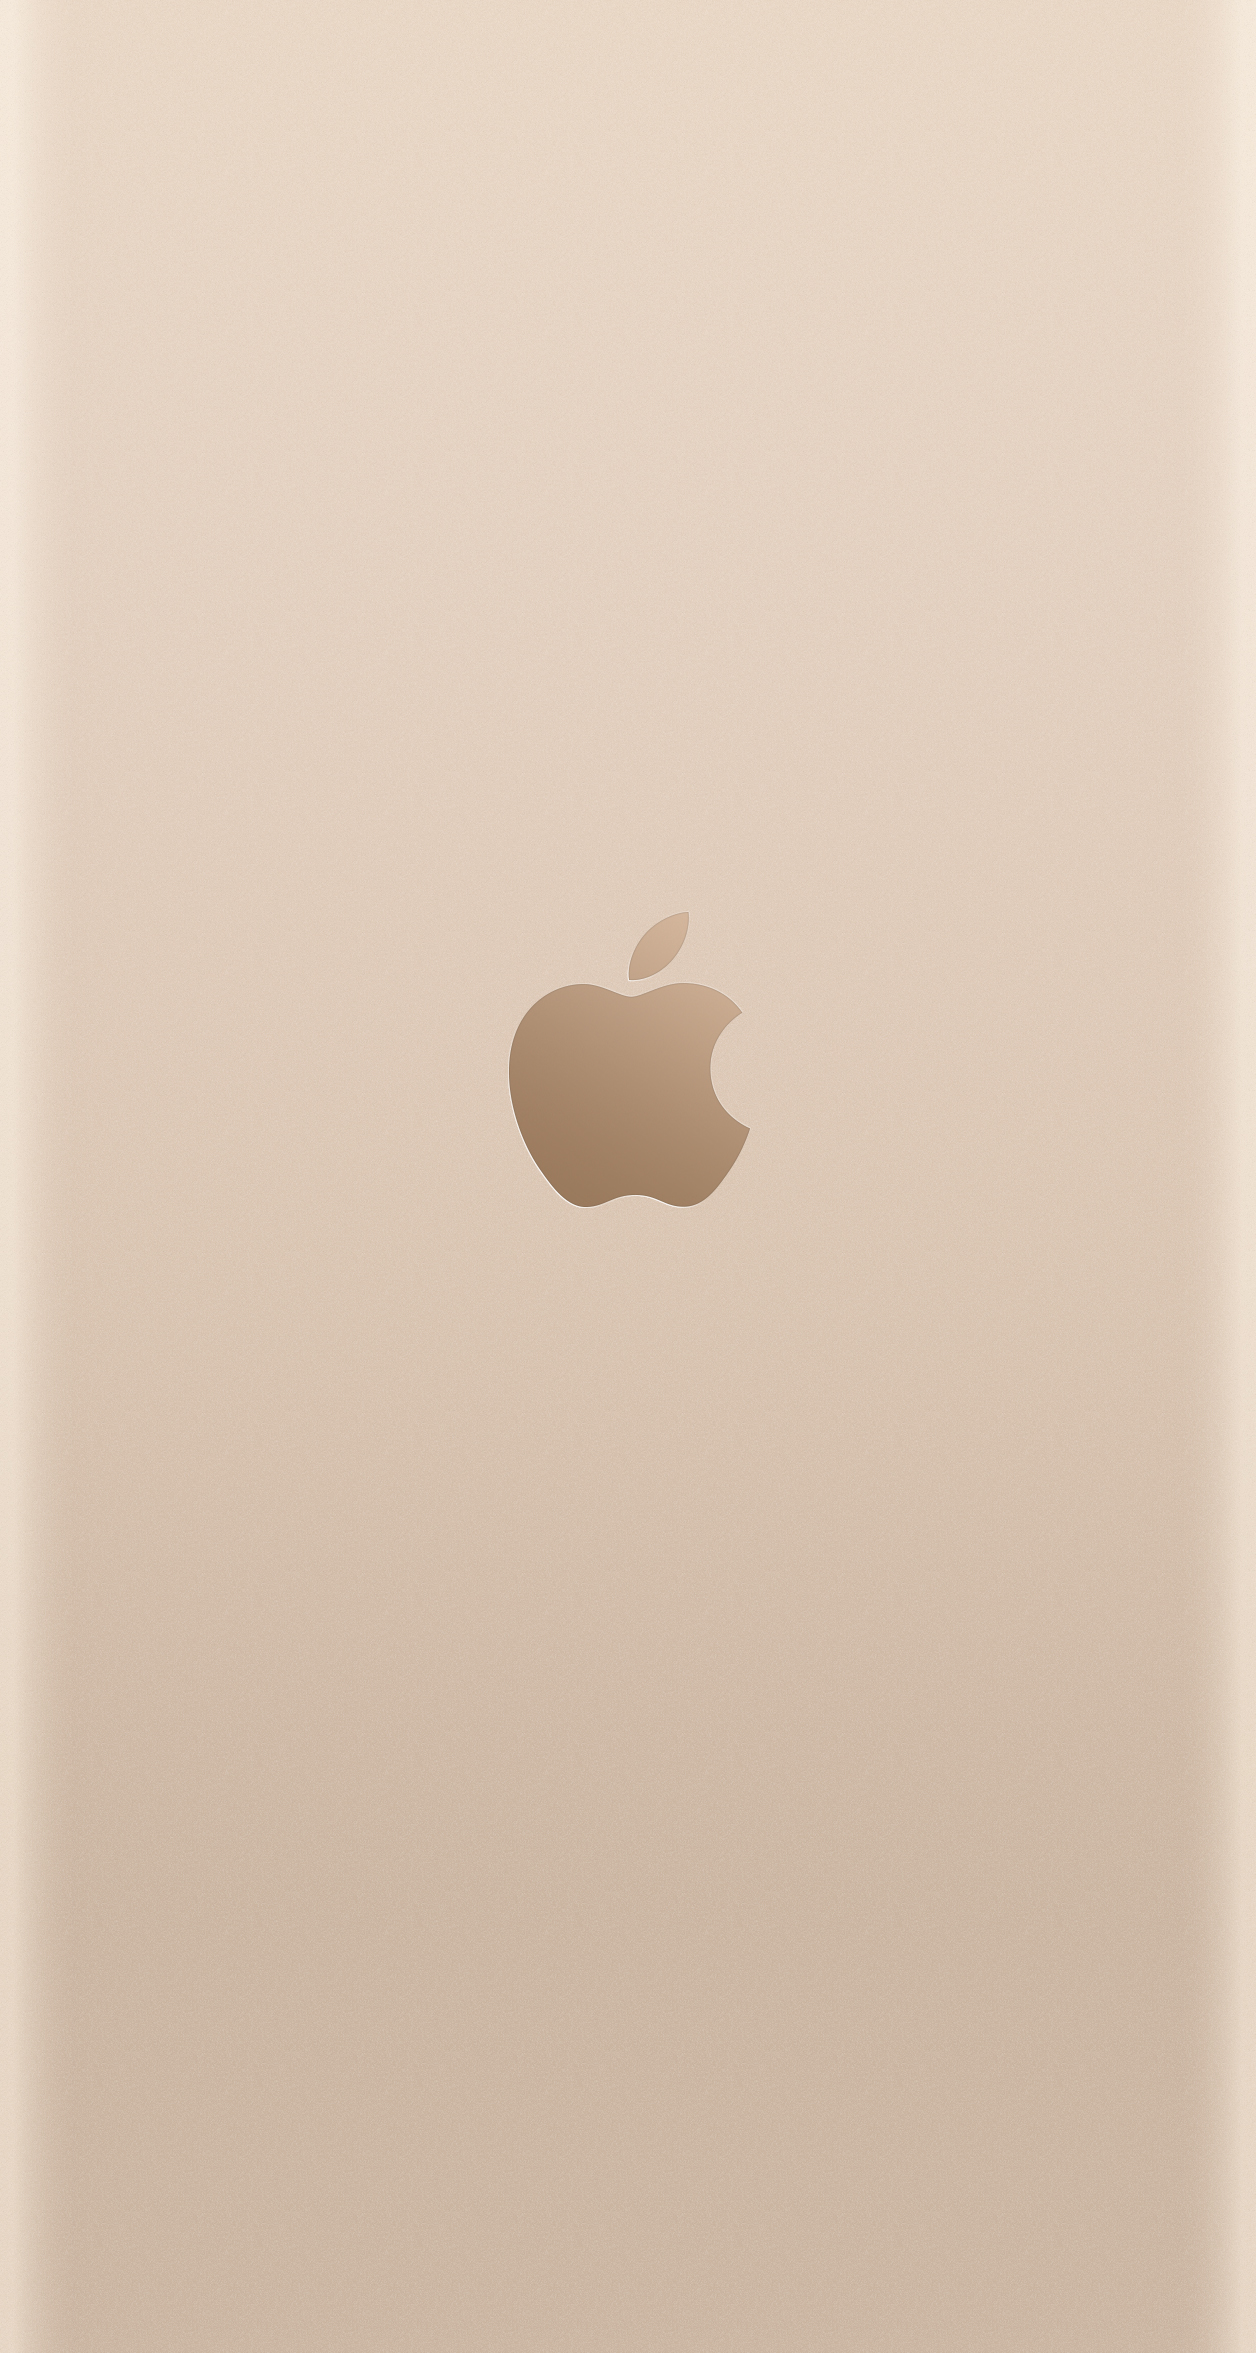 Apple logo wallpapers for iPhone 6 1256x2353